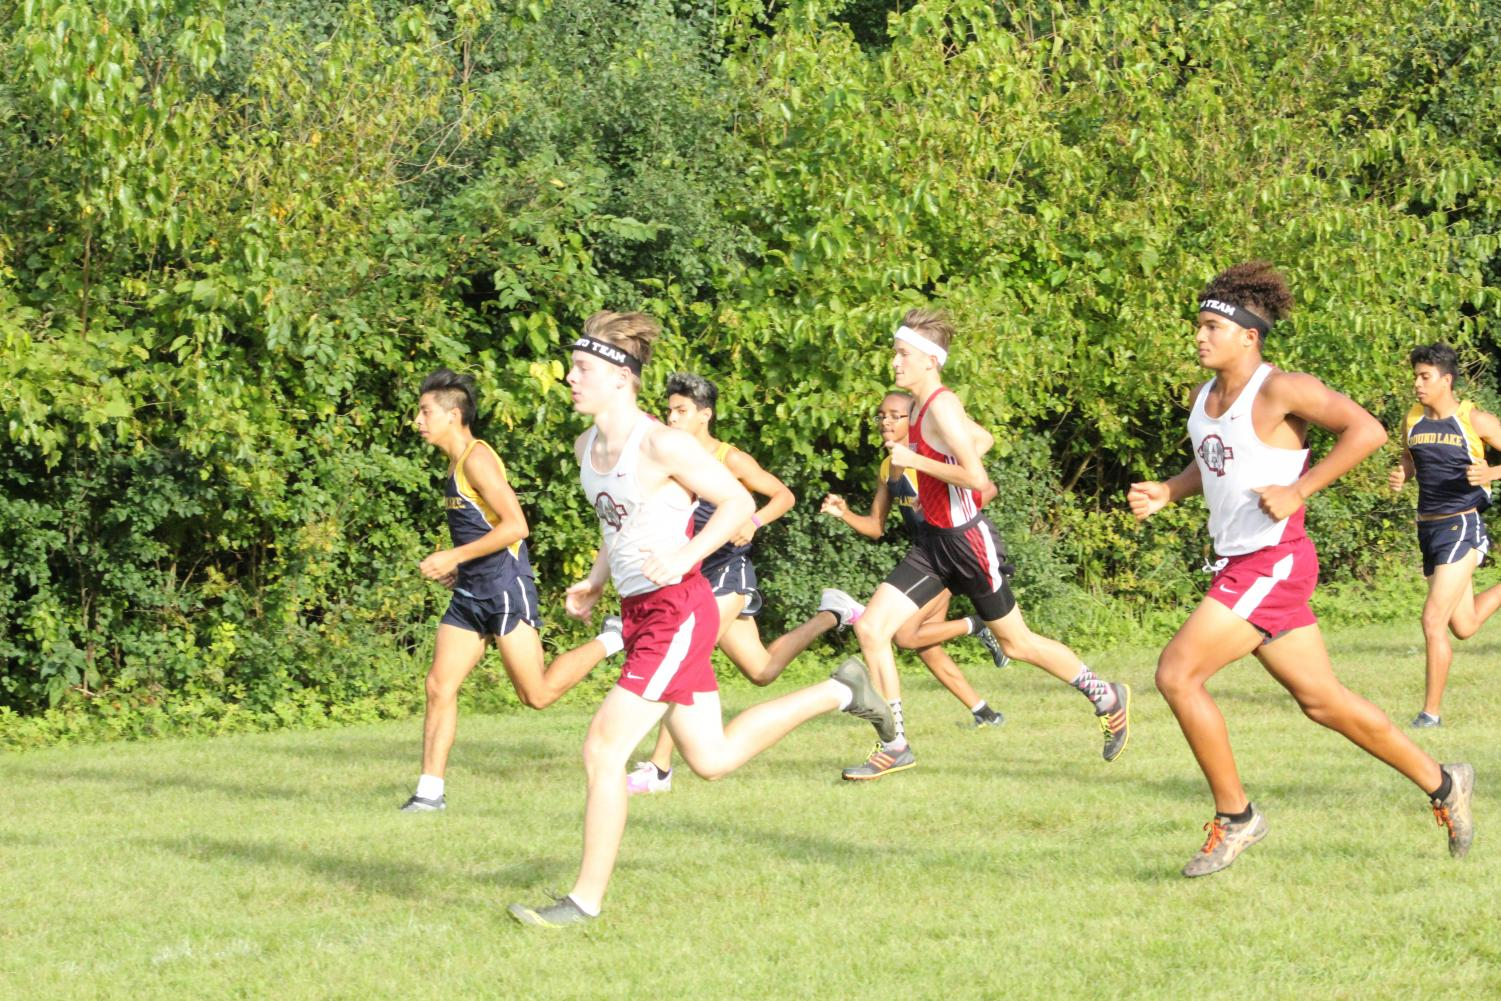 Juniors Owen Lane and Kyle Miller pushing through the last stretch of the race.